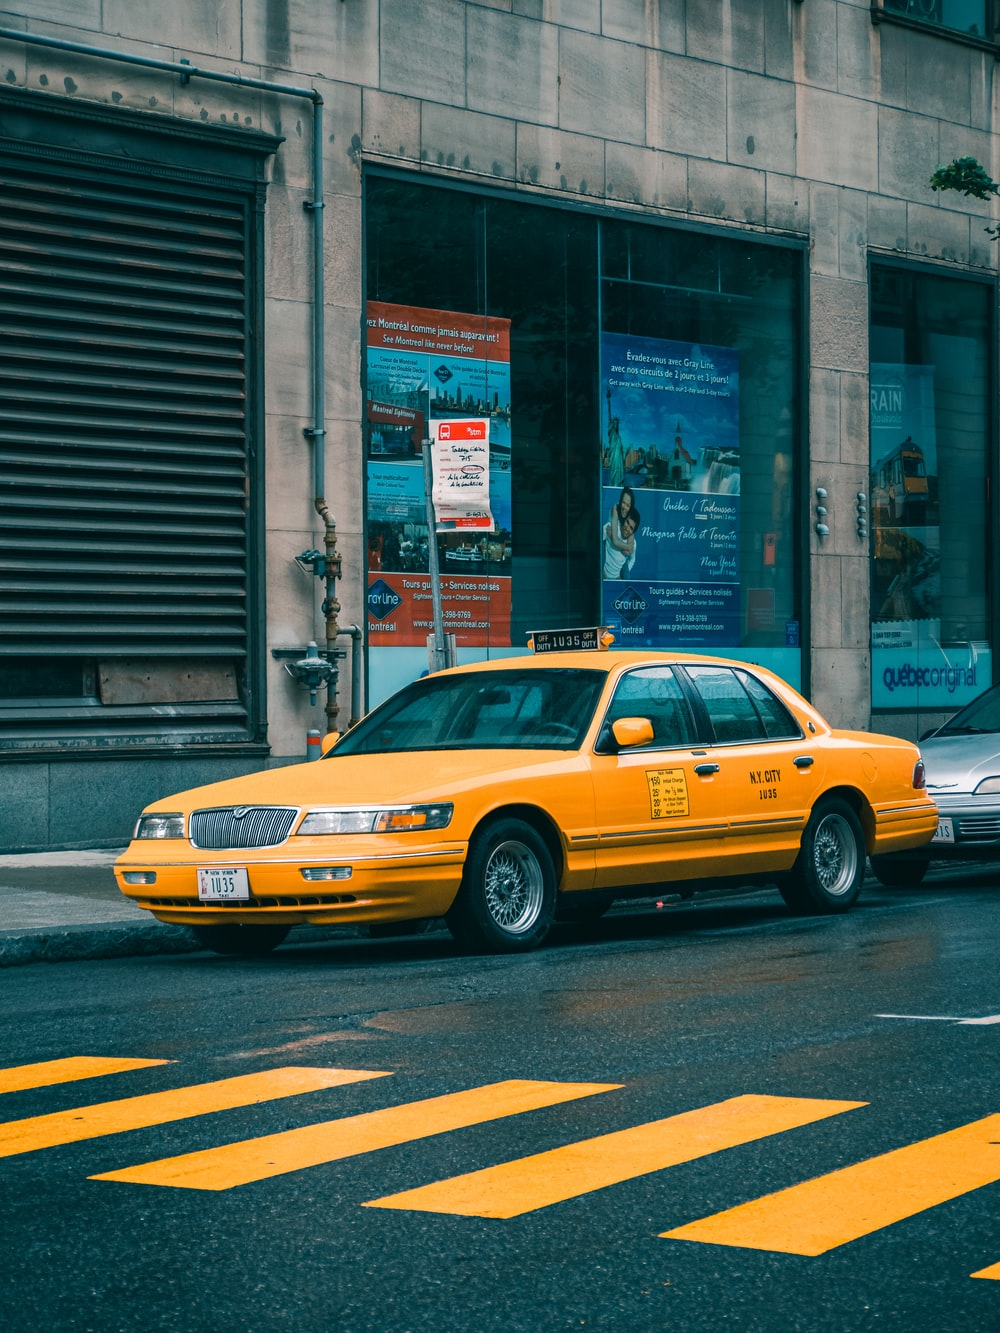 yellow taxi cab on street during daytime